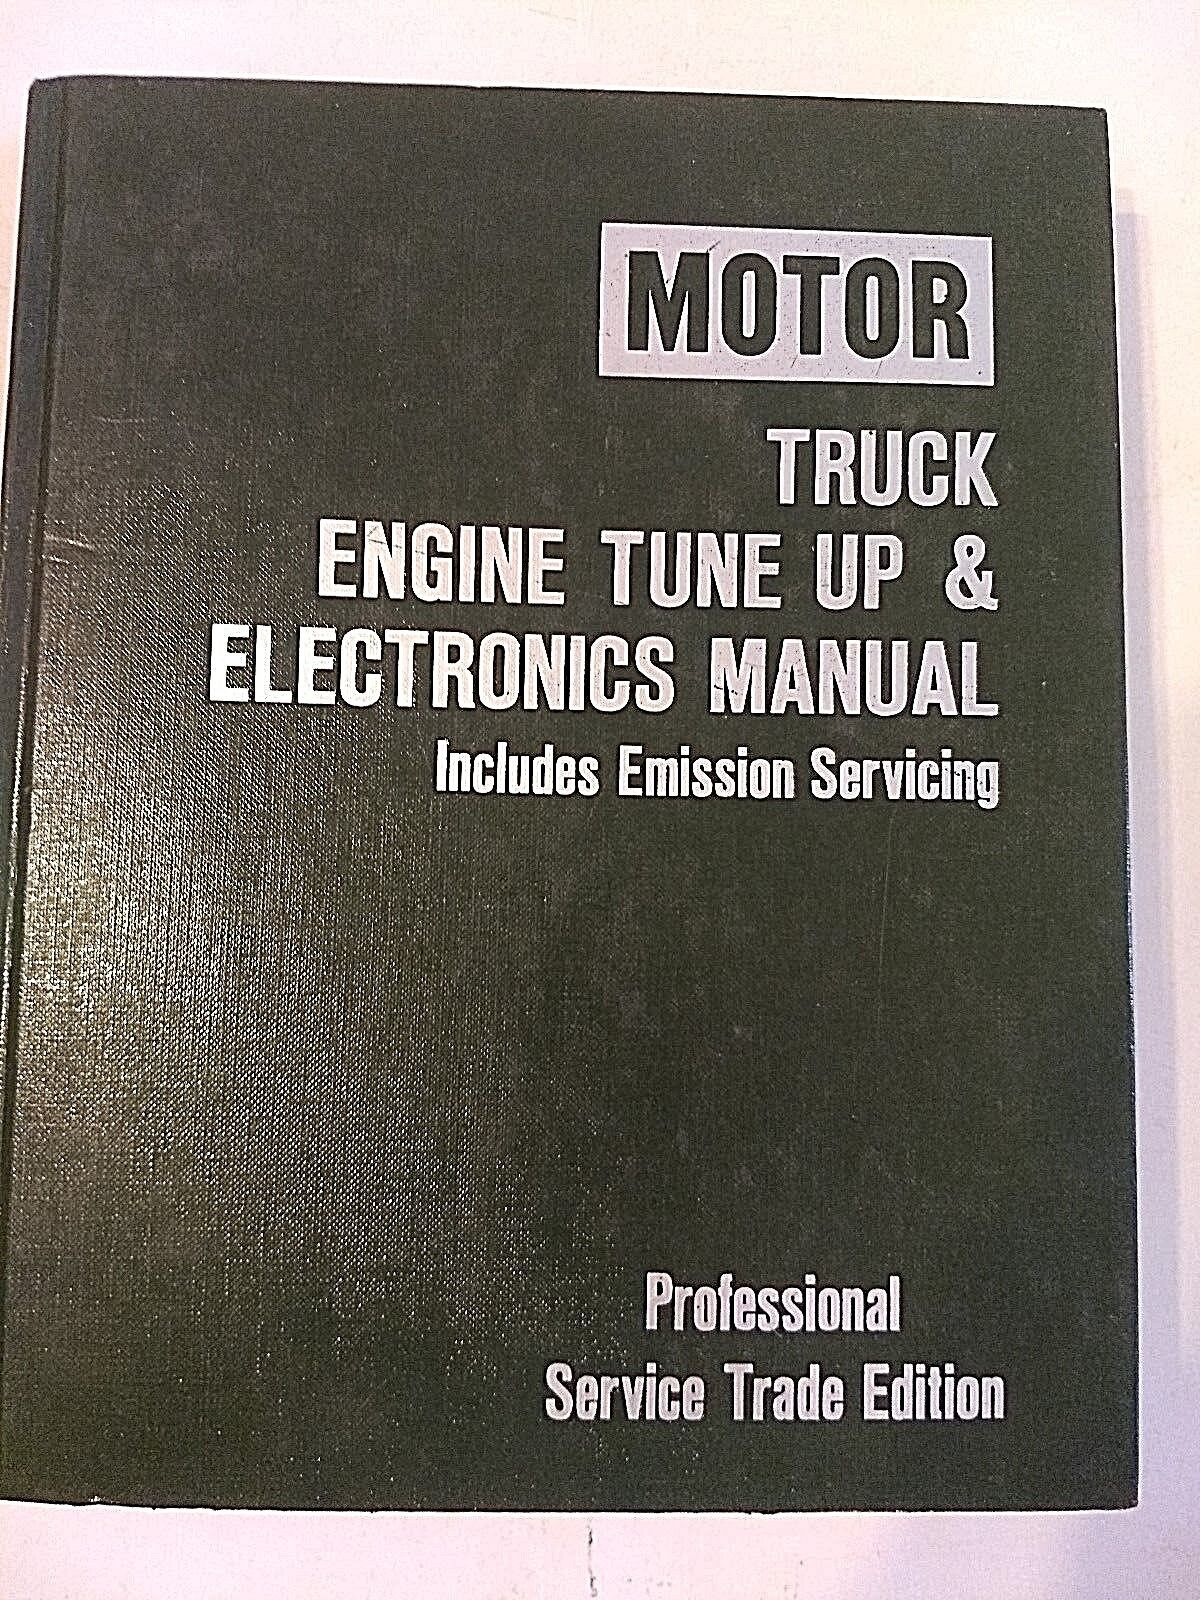 1977-84 MOTOR TRUCK ENGINE TUNE UP & ELECTRONICS SERVICE MANUAL BOOK 1ST EDITION